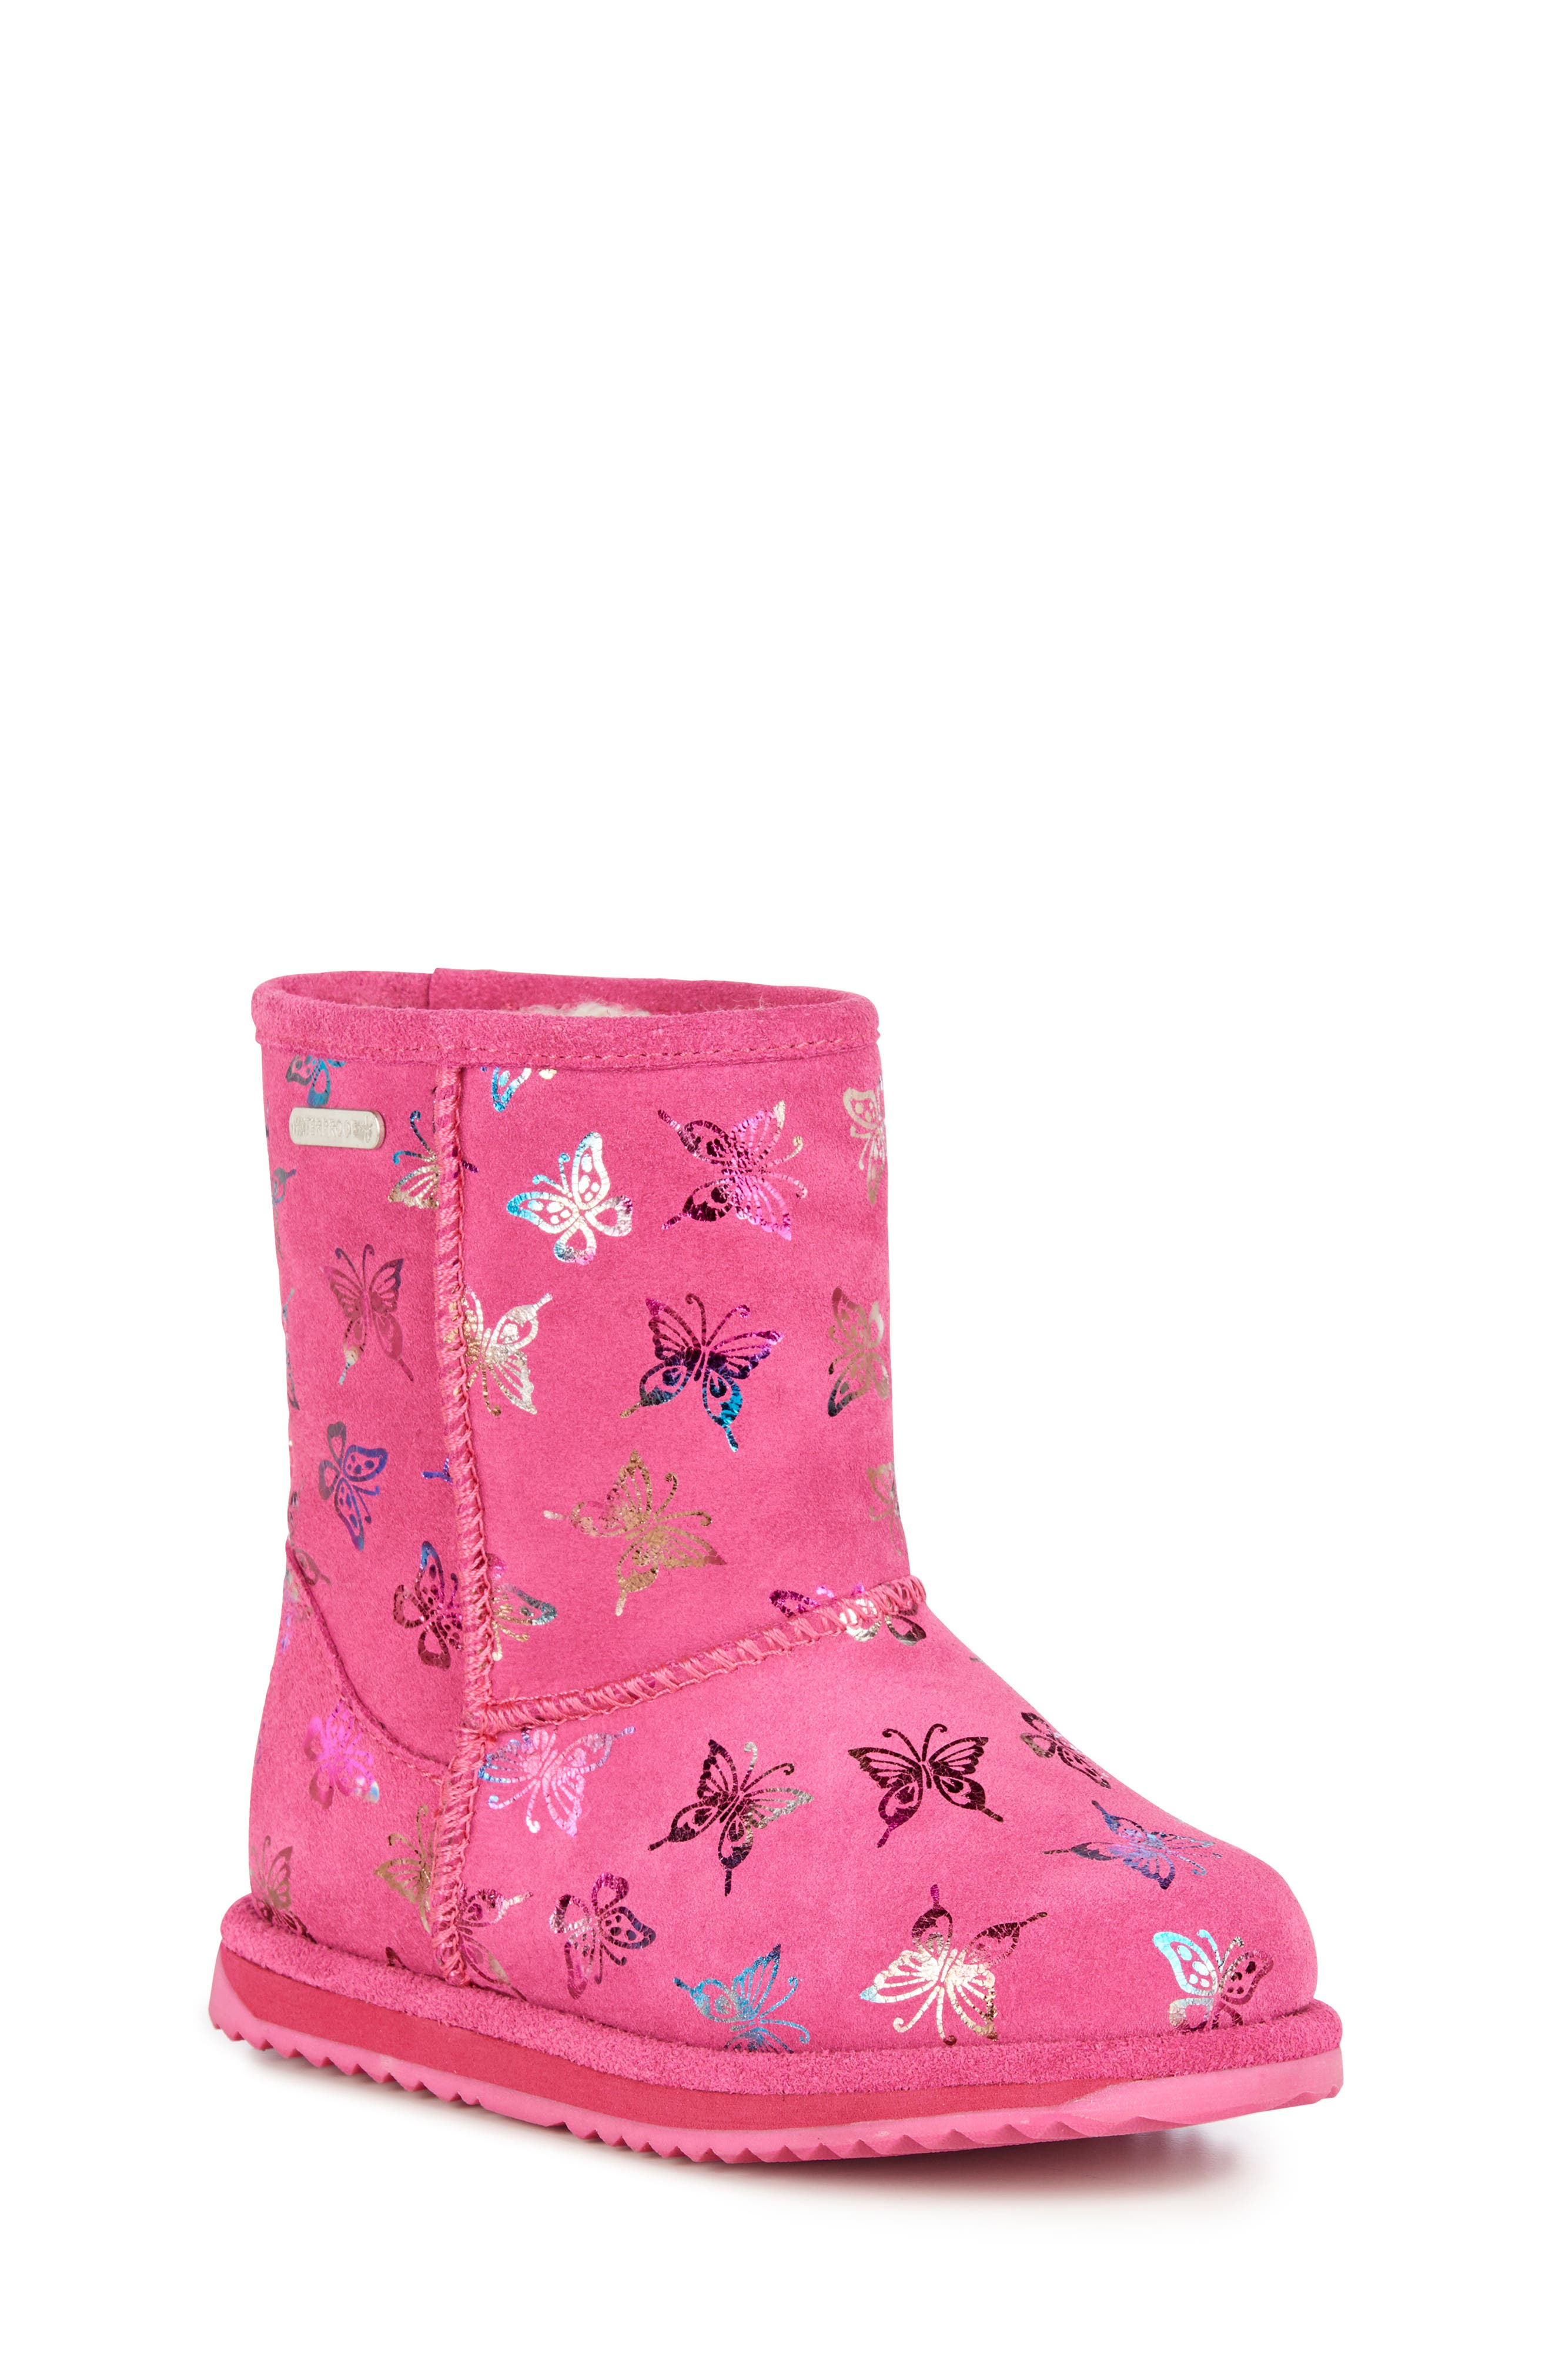 Animal Print Boots,                         Main,                         color, HOT PINK